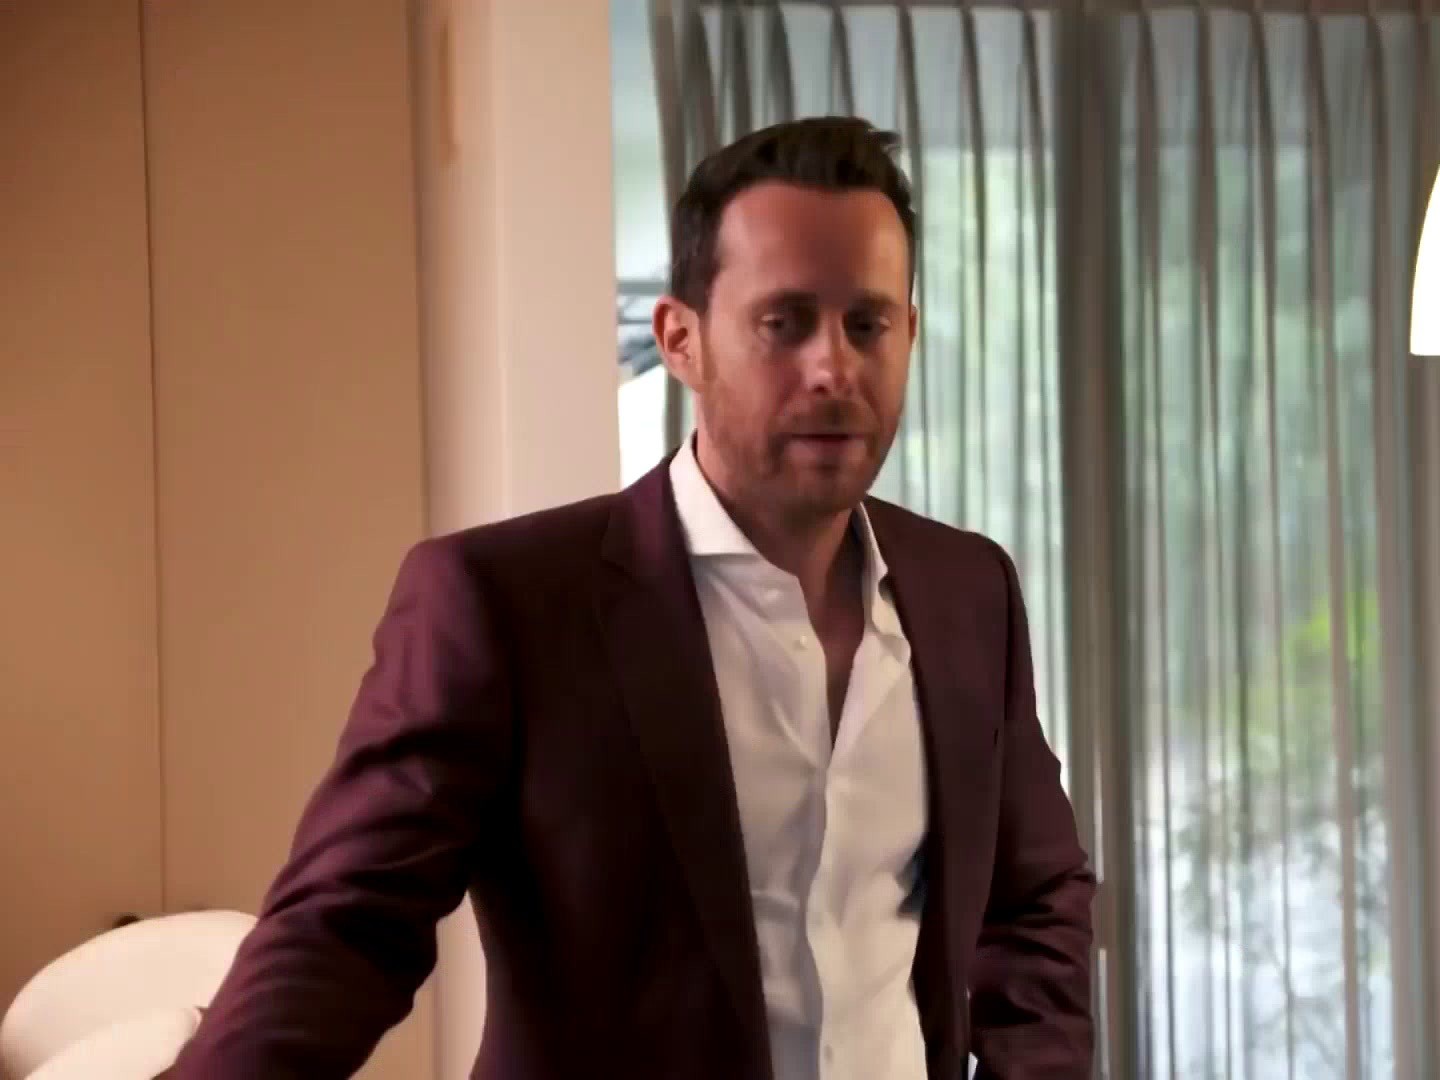 Million Dollar Listing Los Angeles: Rock and a Hard Place